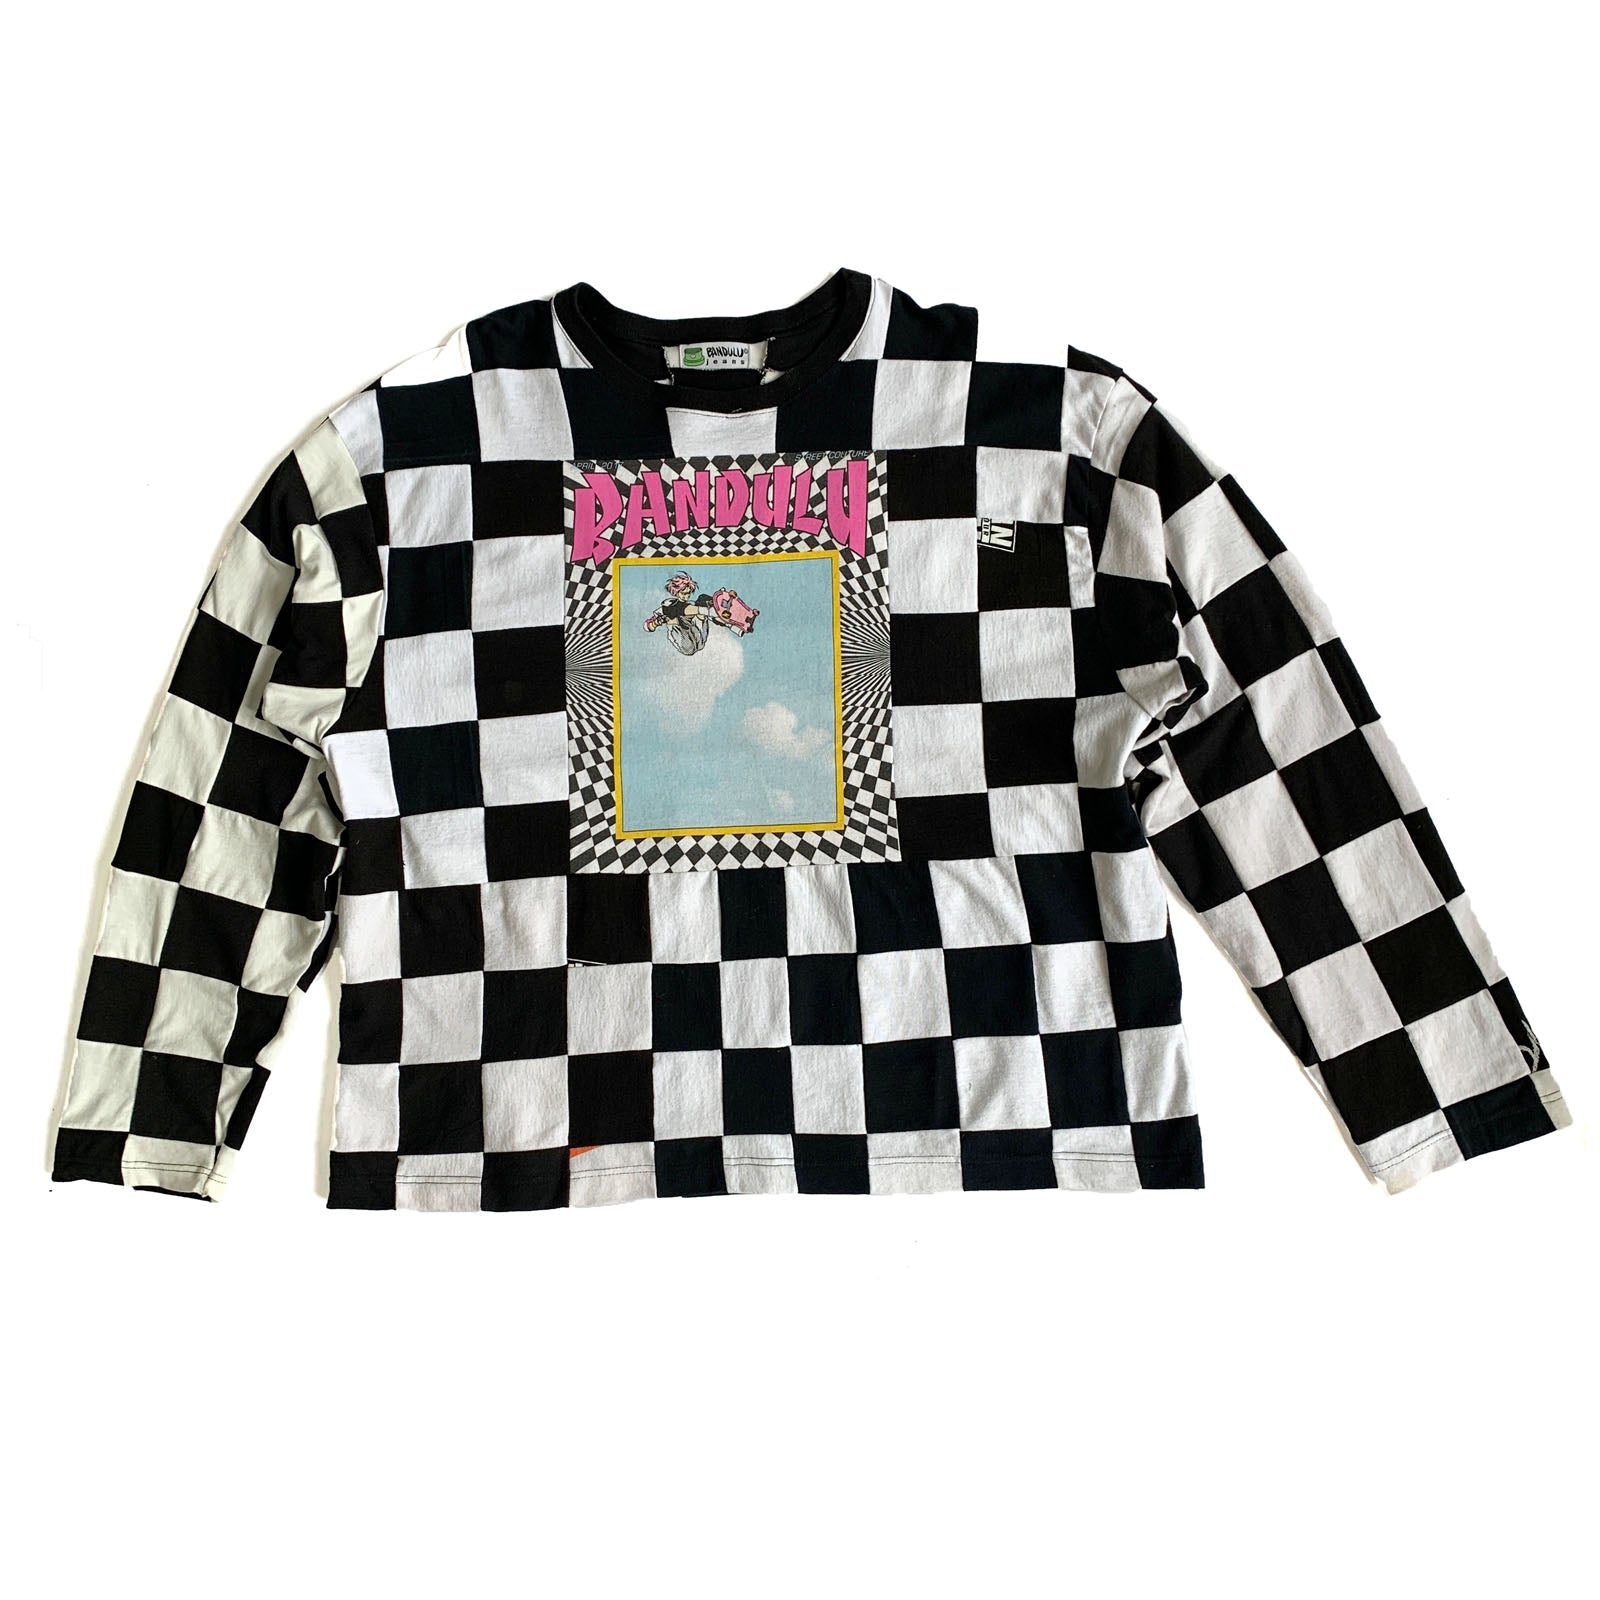 "BANDULU "" CHECKERBOARD TRUNKS "" UPCYCLED COUTURE TEE"